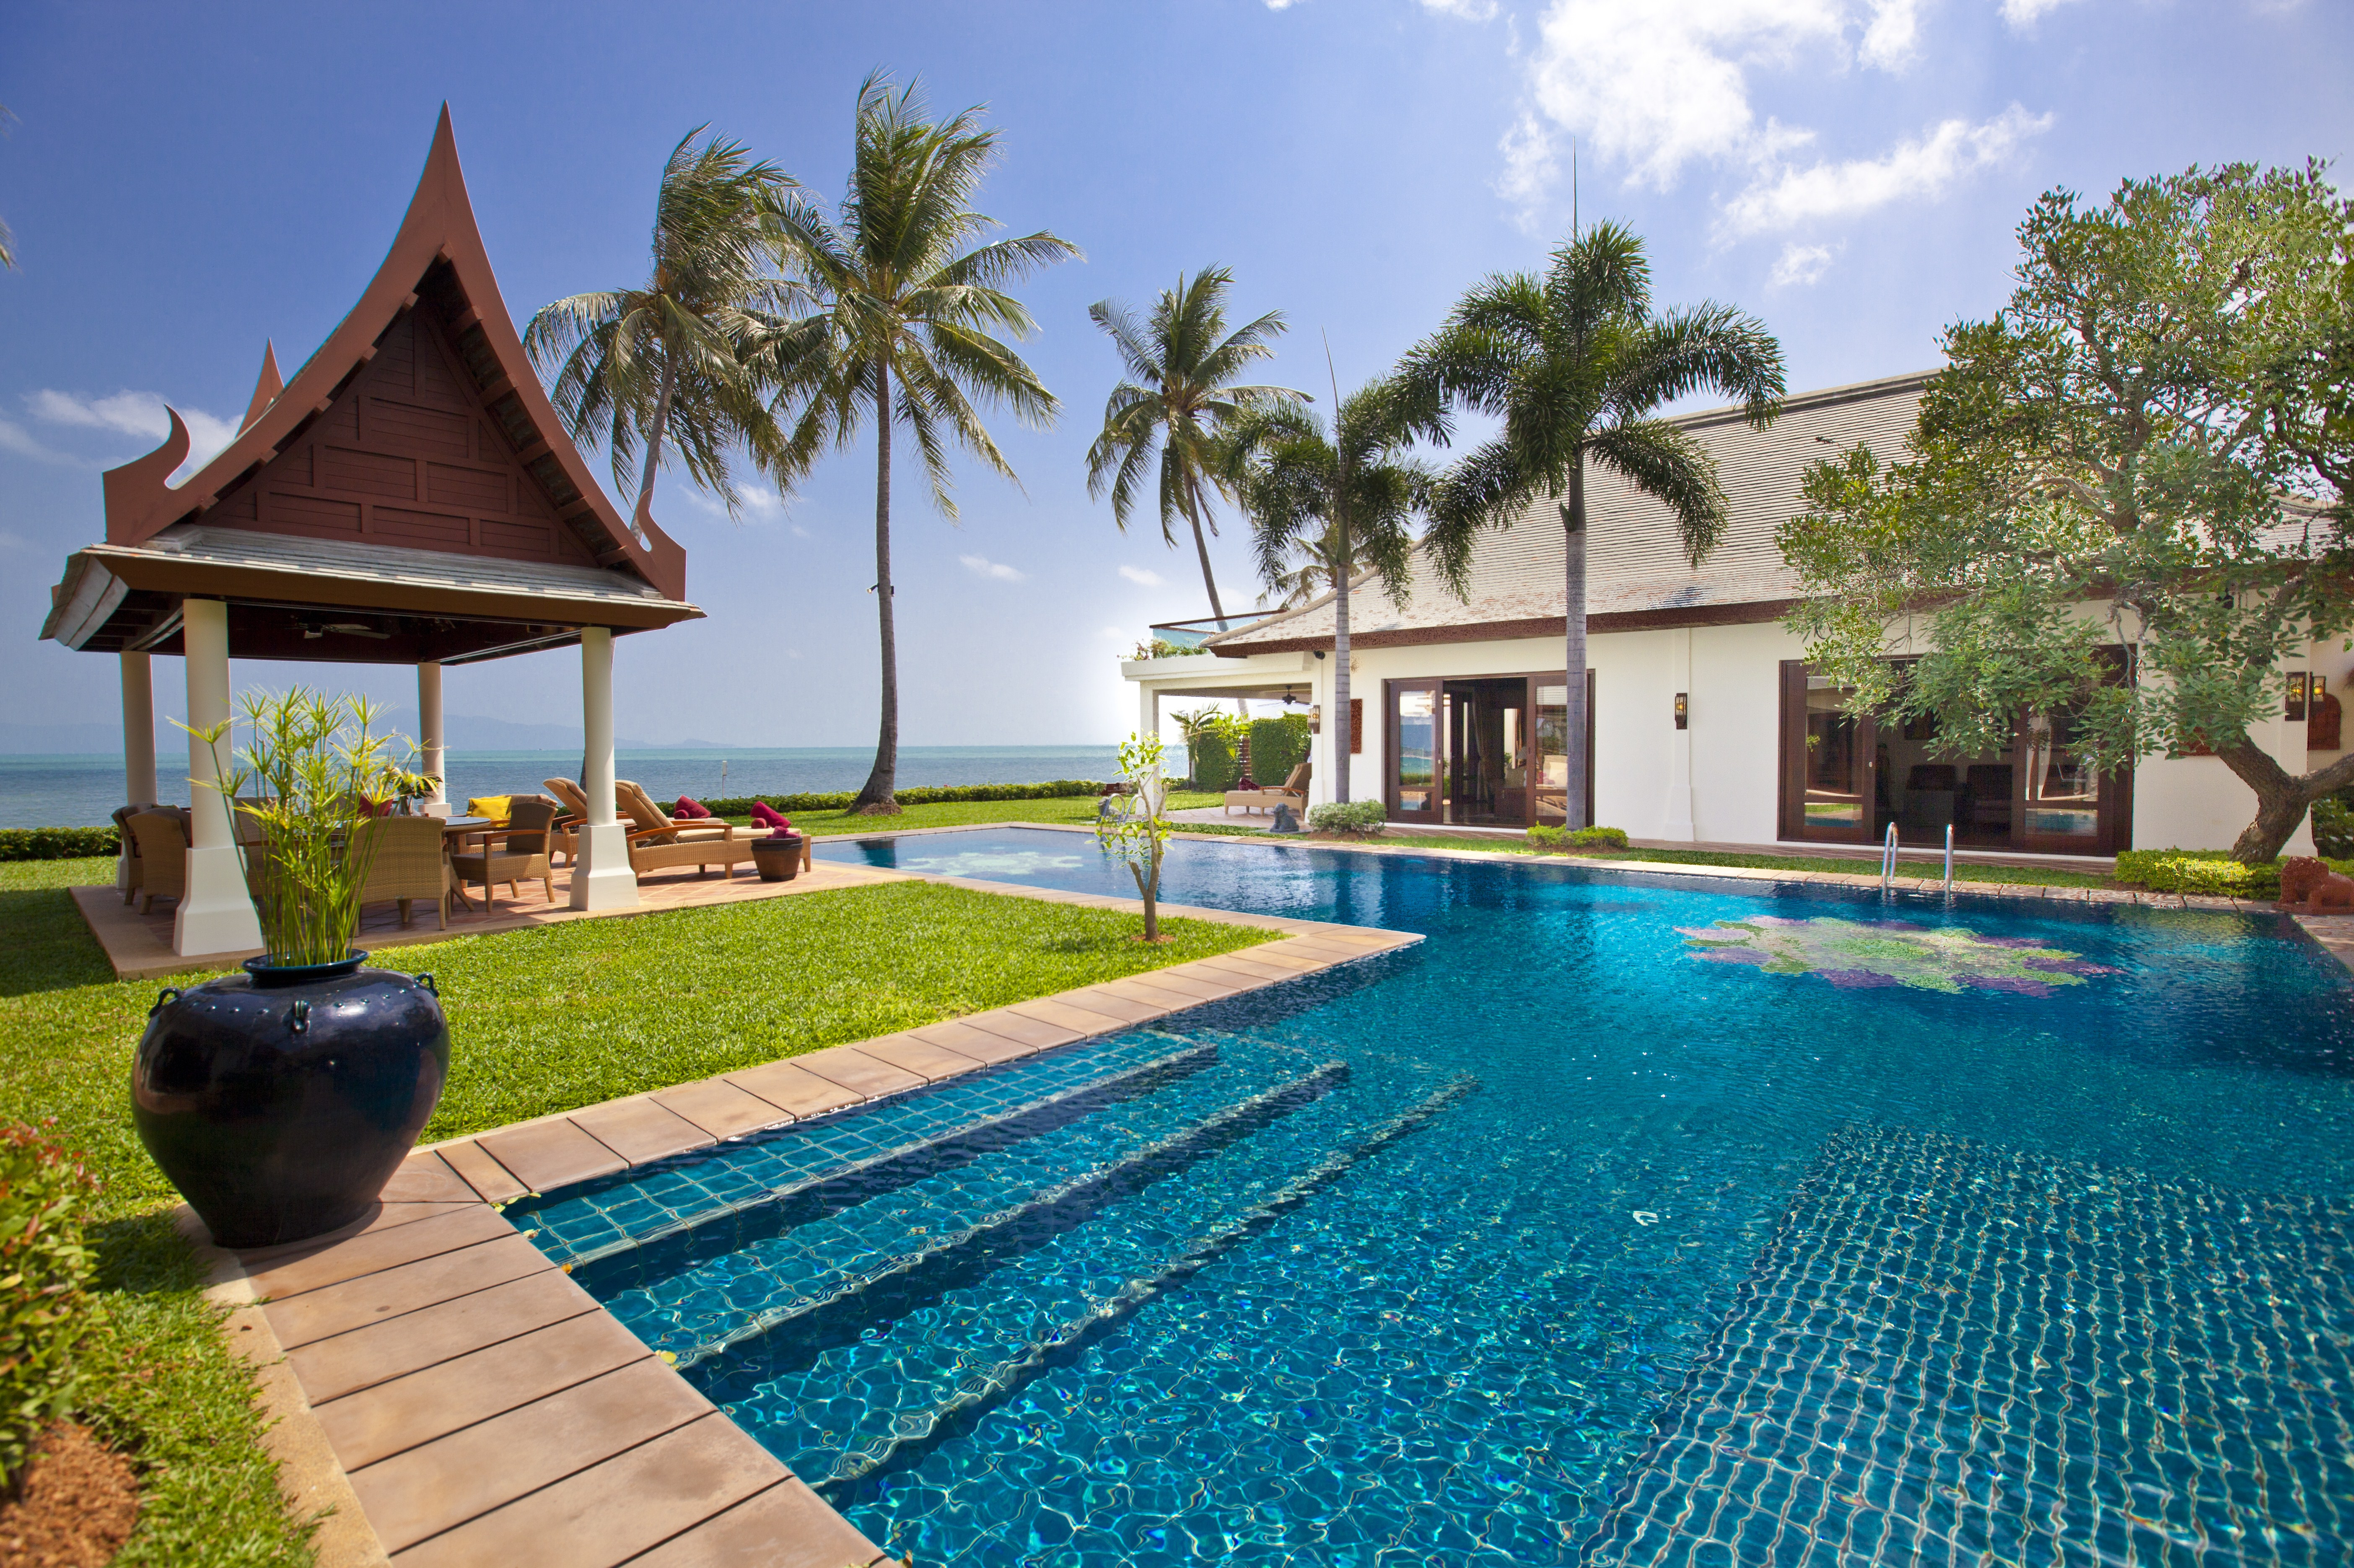 Holiday Hotels With Private Pools